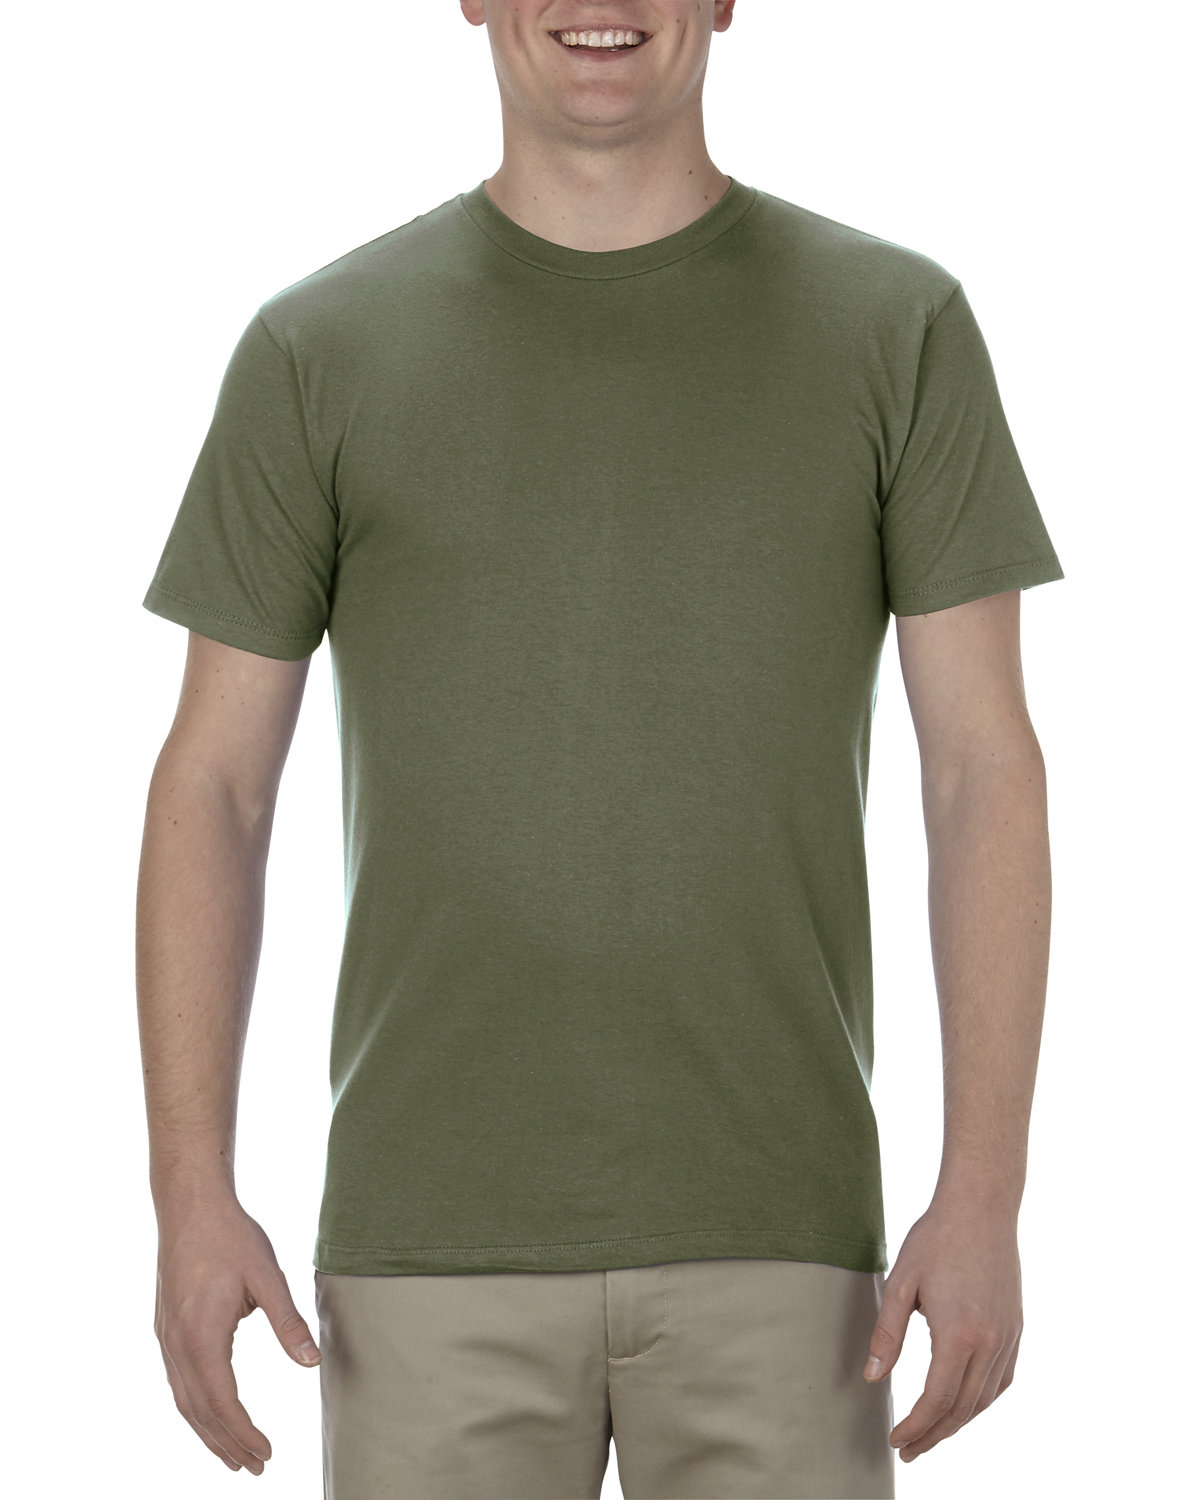 Alstyle Adult 4.3 oz., Ringspun Cotton T-Shirt MILITARY GREEN